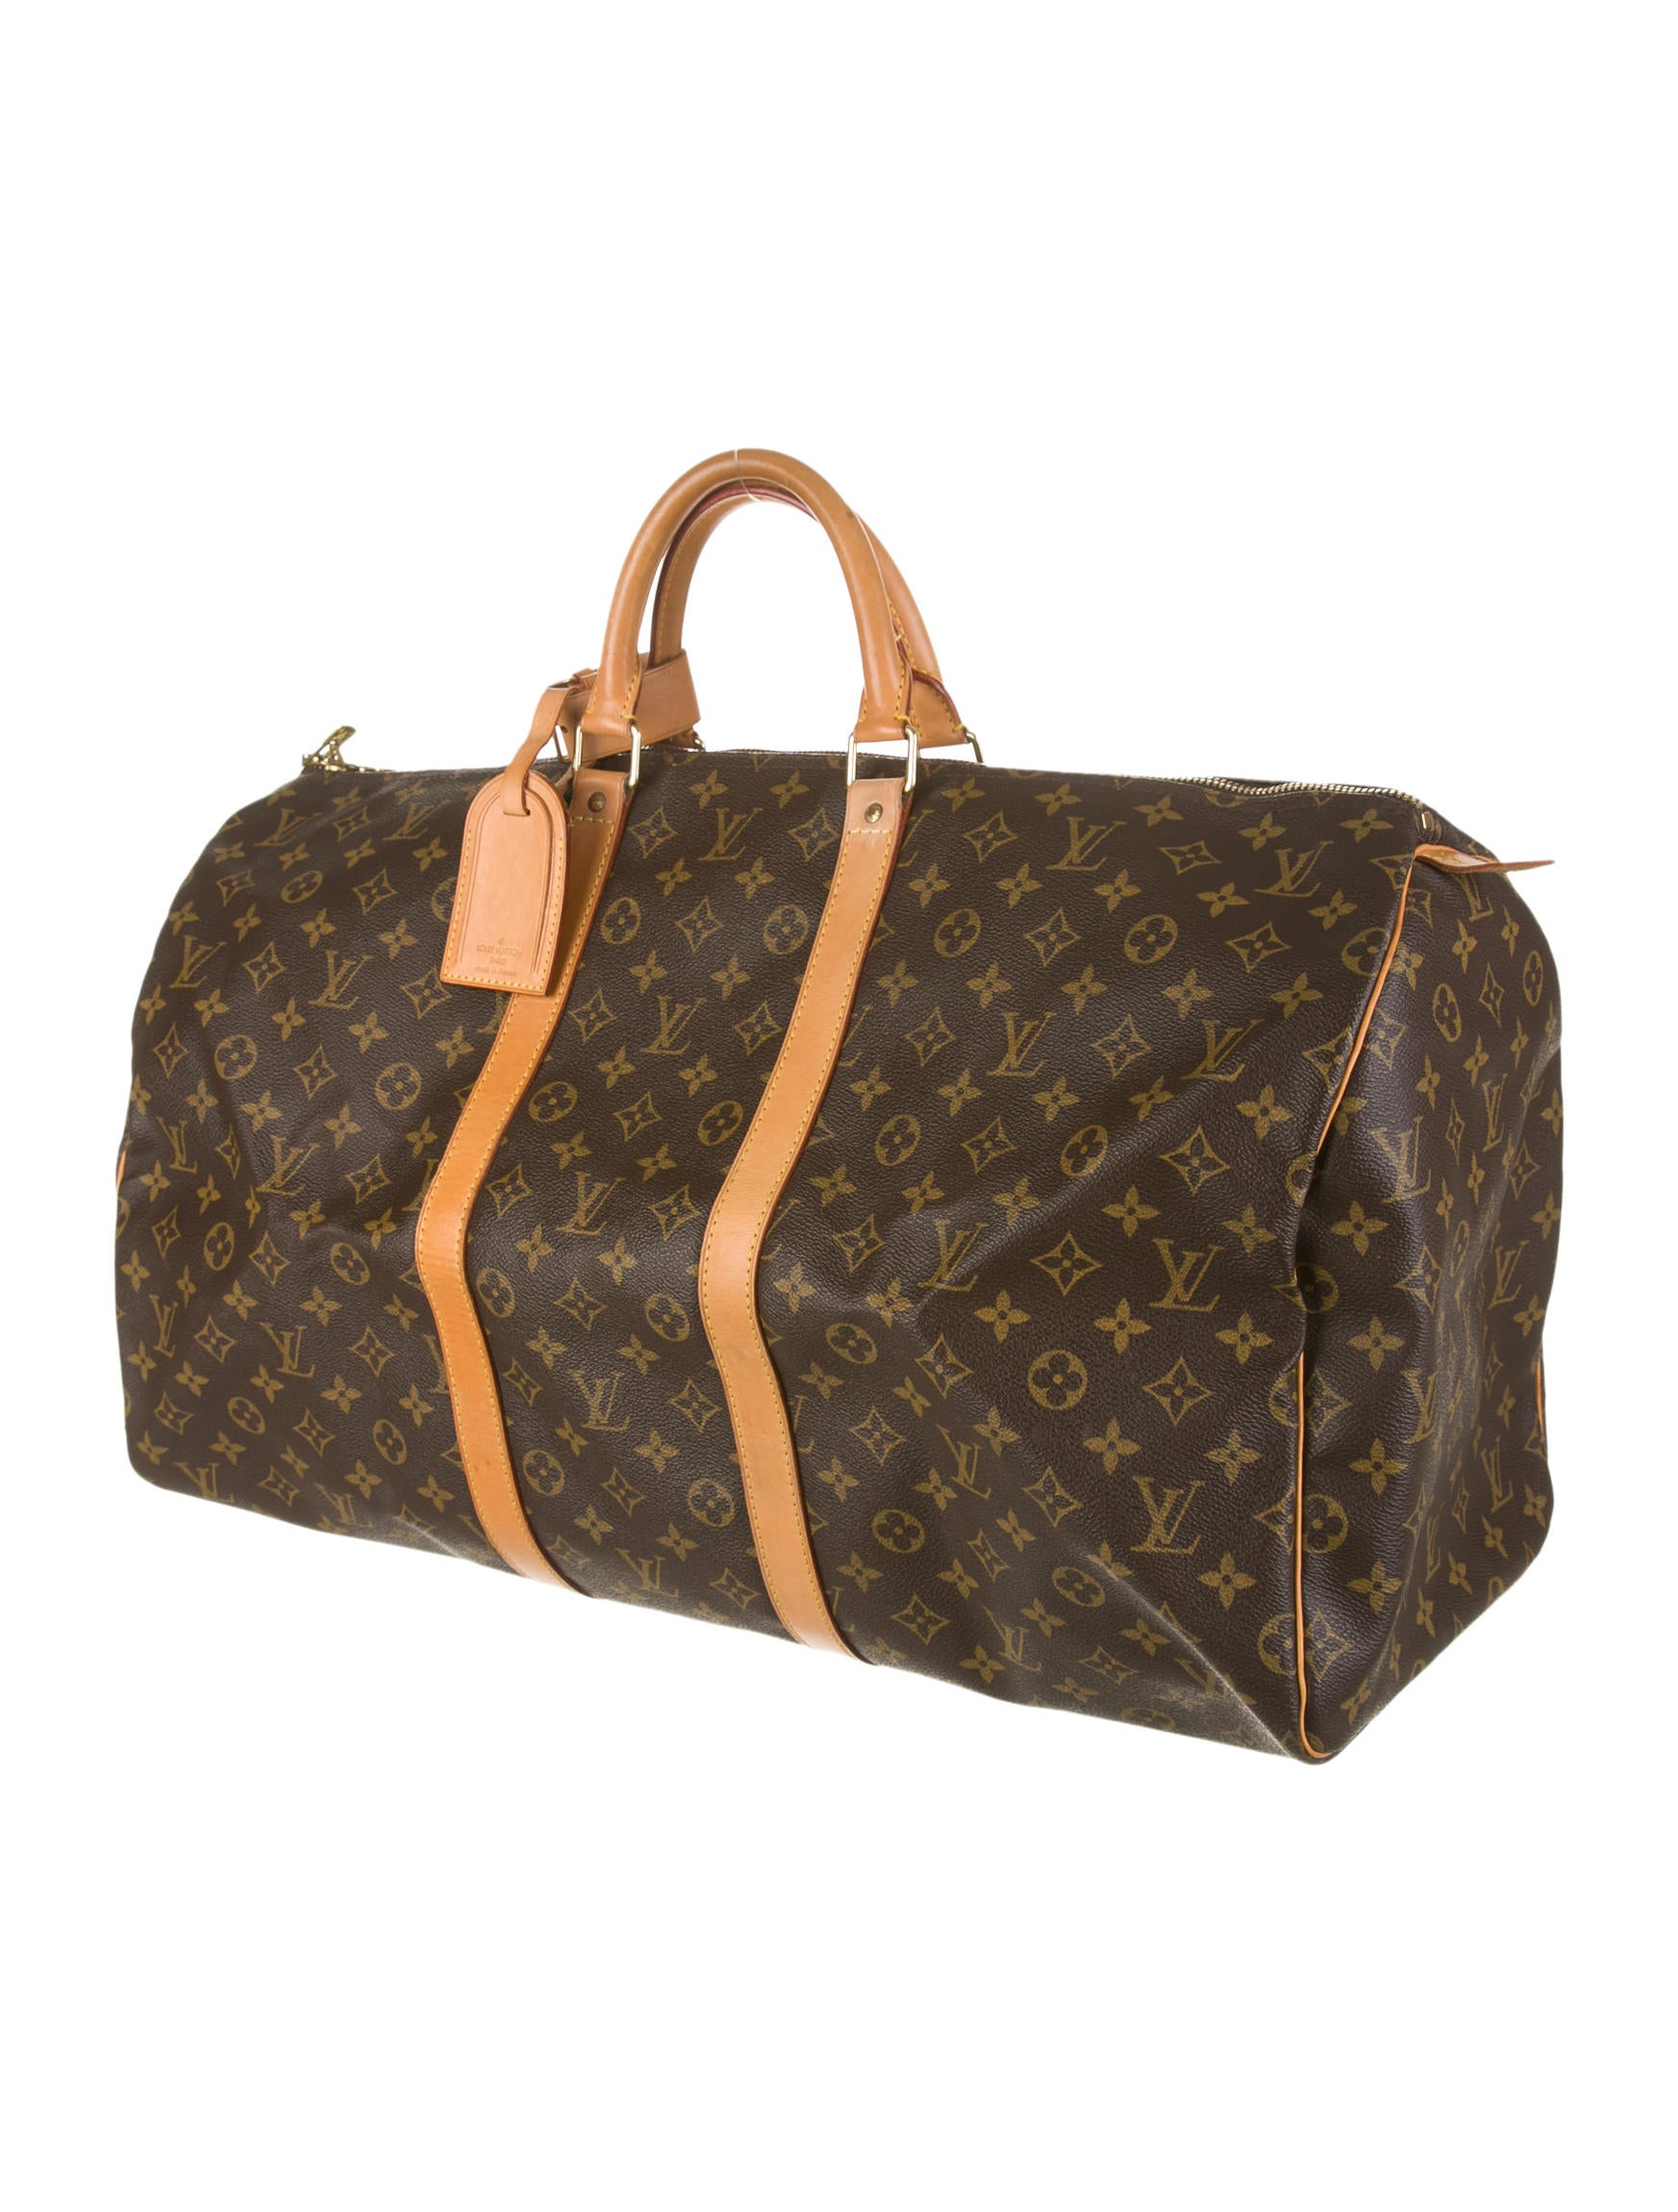 louis vuitton keepall 55 handbags lou43694 the realreal. Black Bedroom Furniture Sets. Home Design Ideas